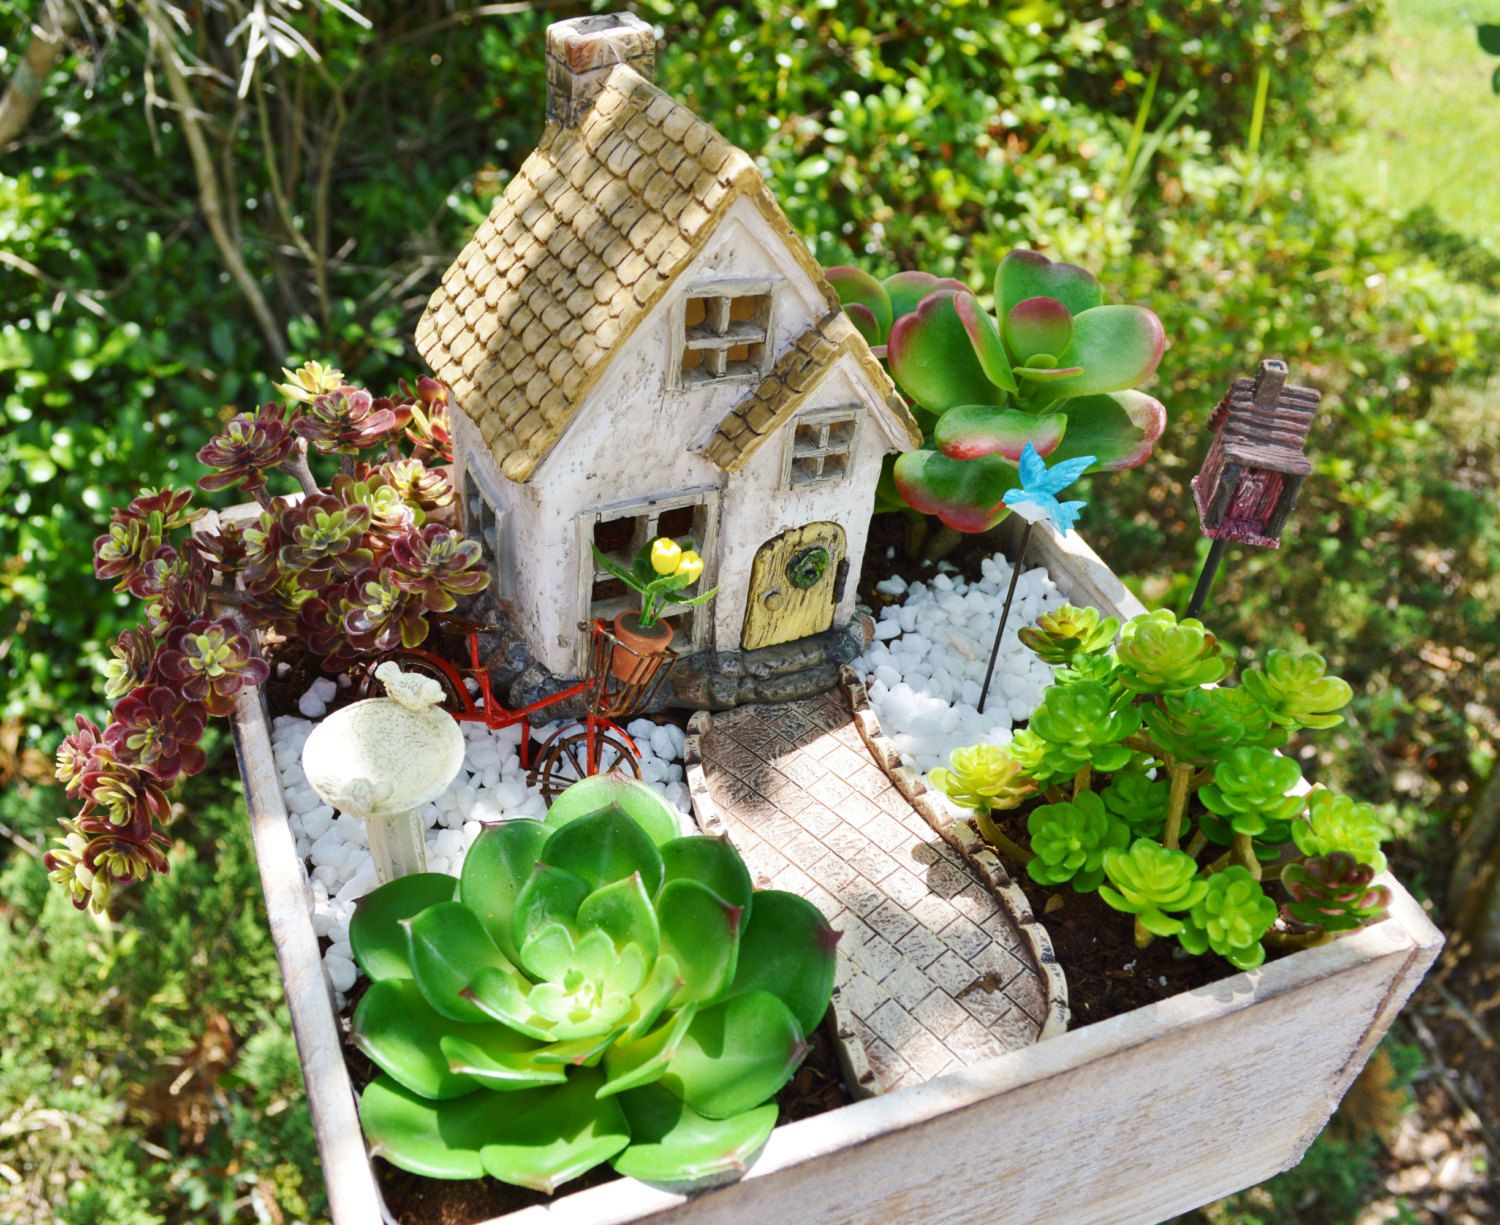 Hilarious House Herb Garden Kits Fairy Garden Cottage Miniature House Kit Wooden Planter Herb Gardenkit Birdbath Fairy Garden Cottage Miniature House Kit Wooden Planter Herb Home Herb Garden Kit